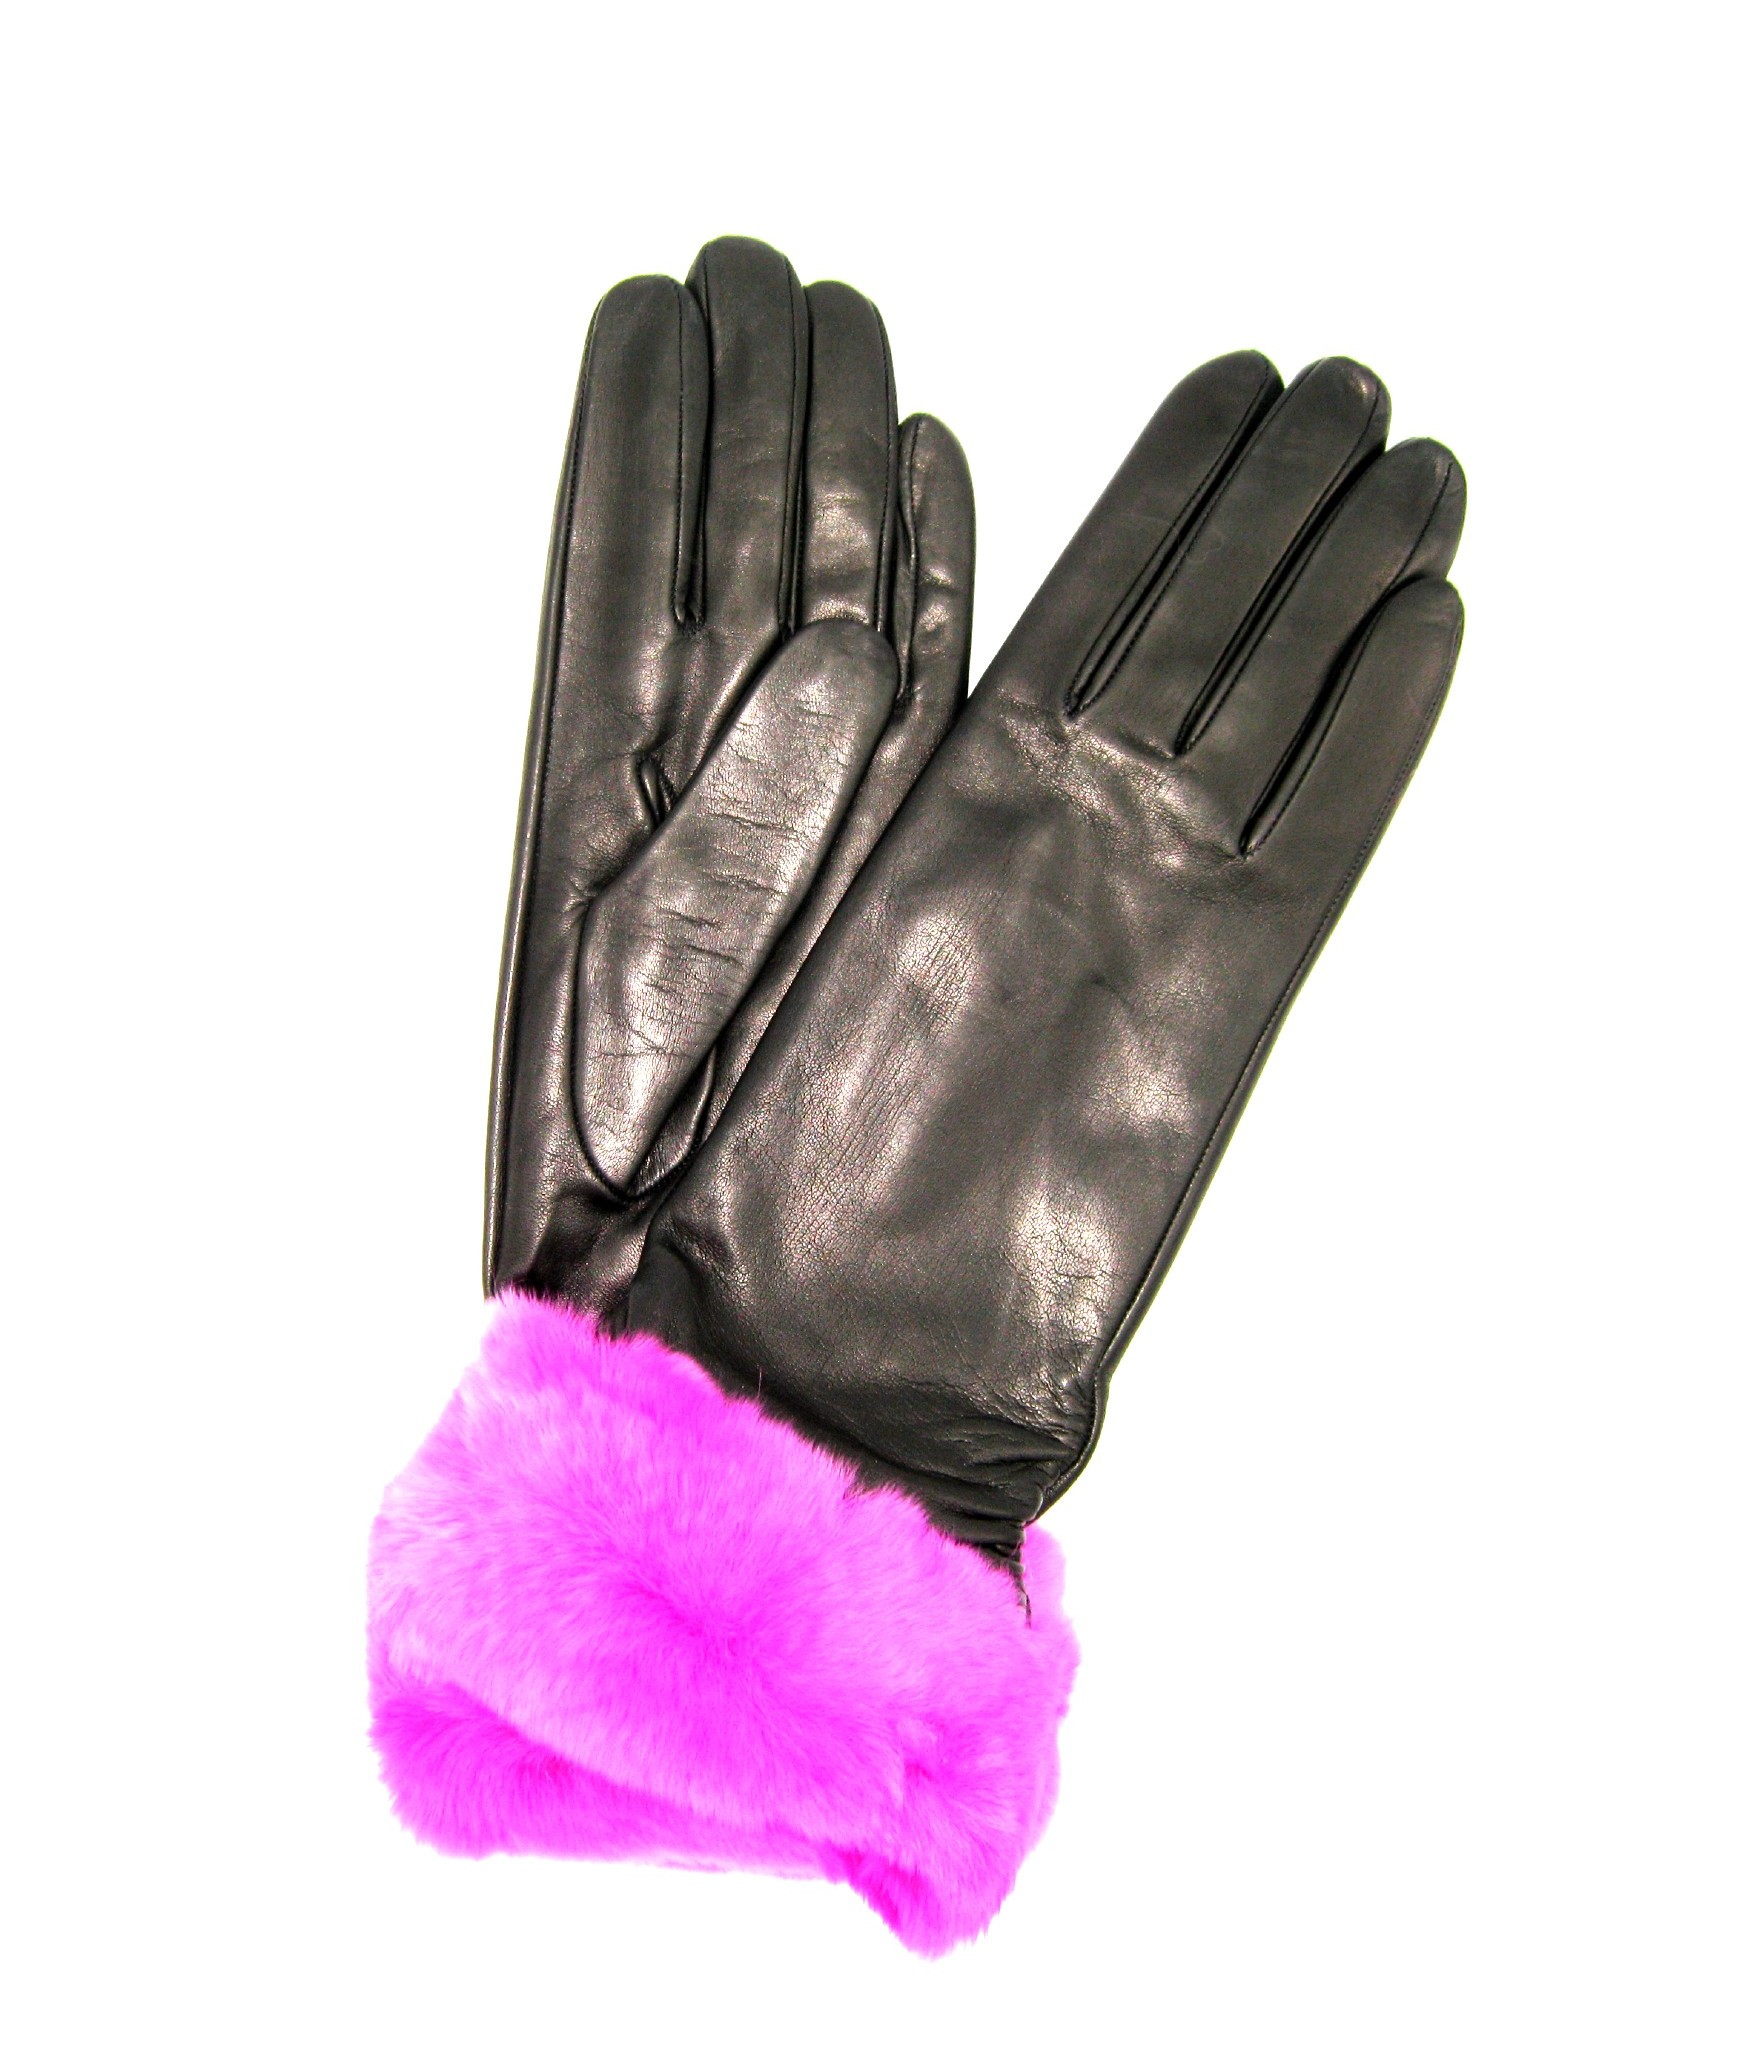 Nappa gloves cashmere lined 4bt with Rex fur Black/Fucsia